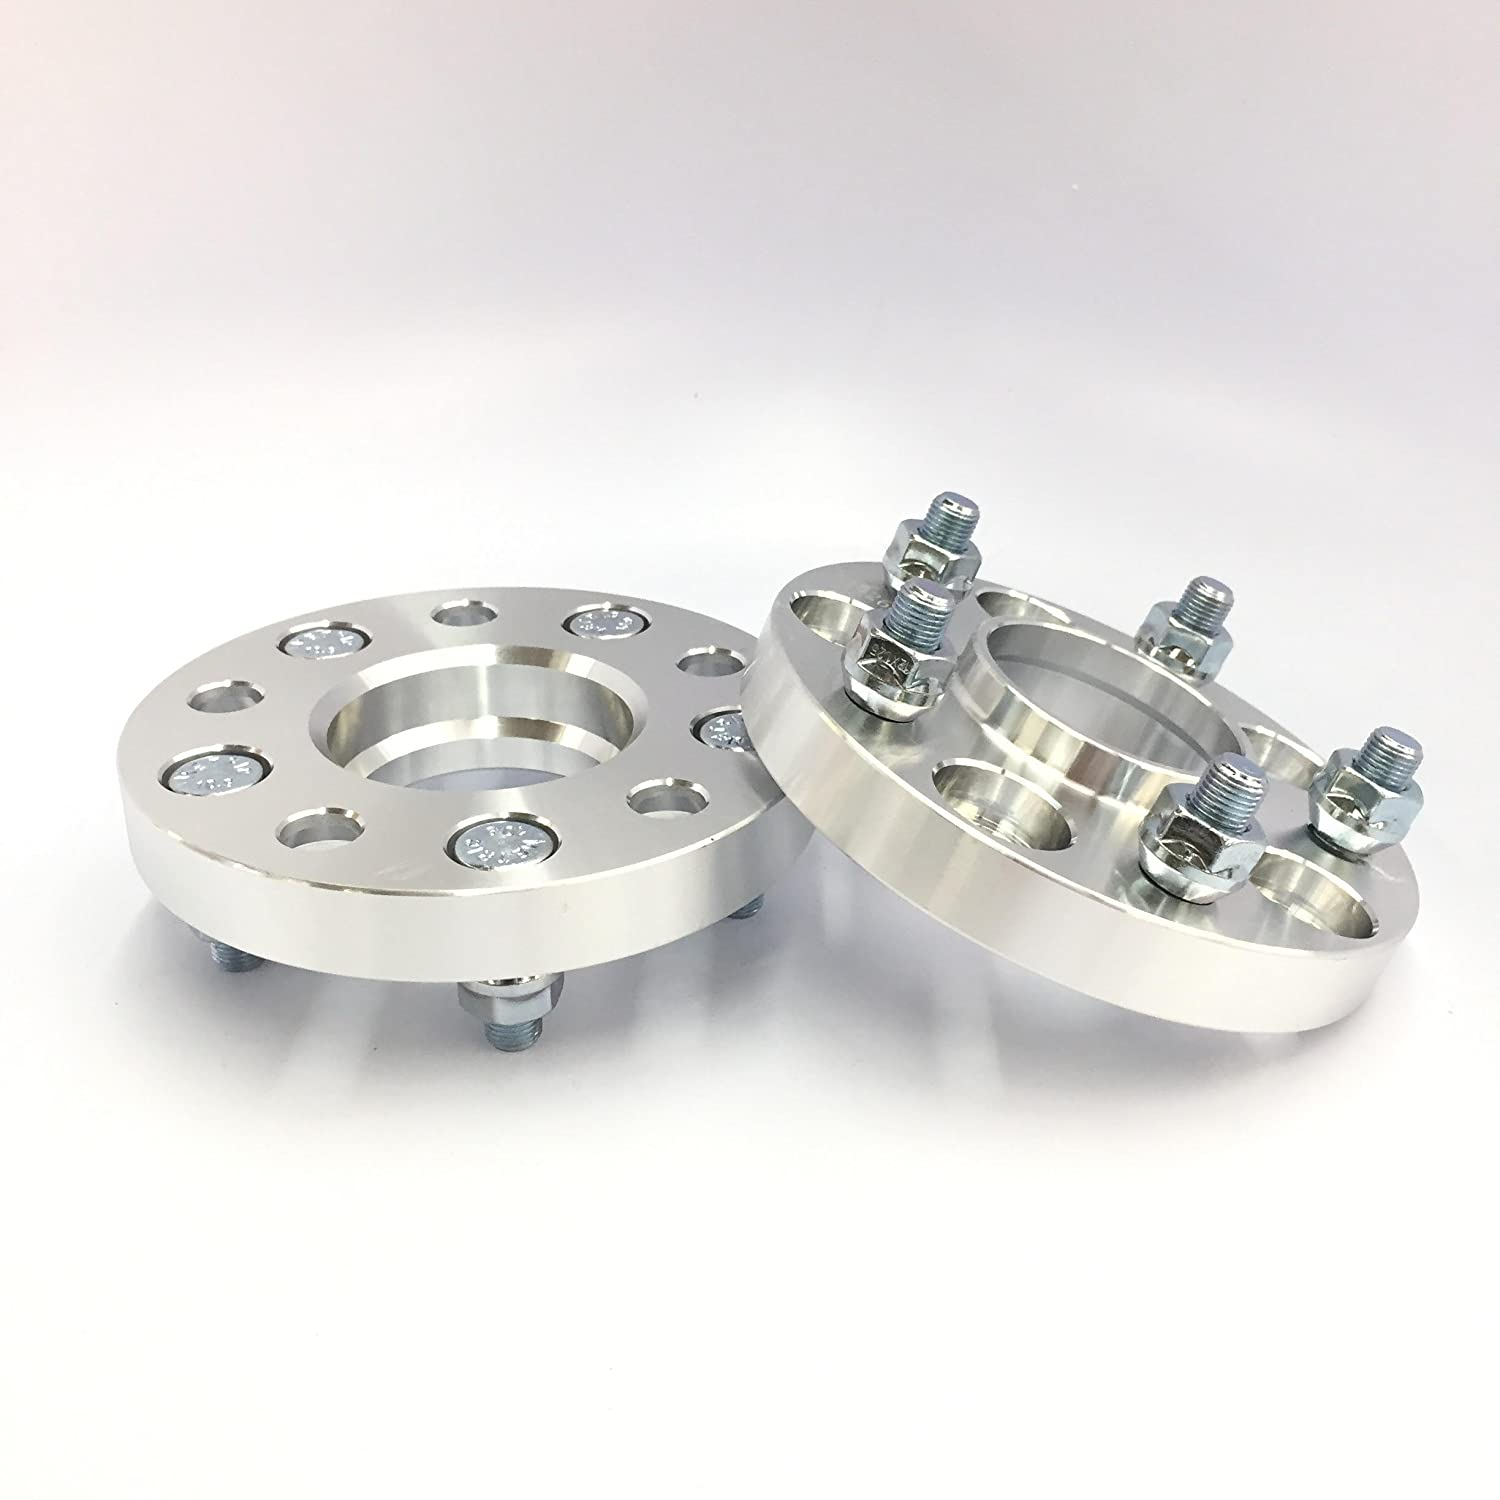 4 Pieces 1 25mm Hub Centric Wheel Spacers with Lip Thread Pitch 14mm x 1.5Bolt Pattern 5x114.3 5x4.5 Center Bore 71.5mm Hub 14x1.5 Stud